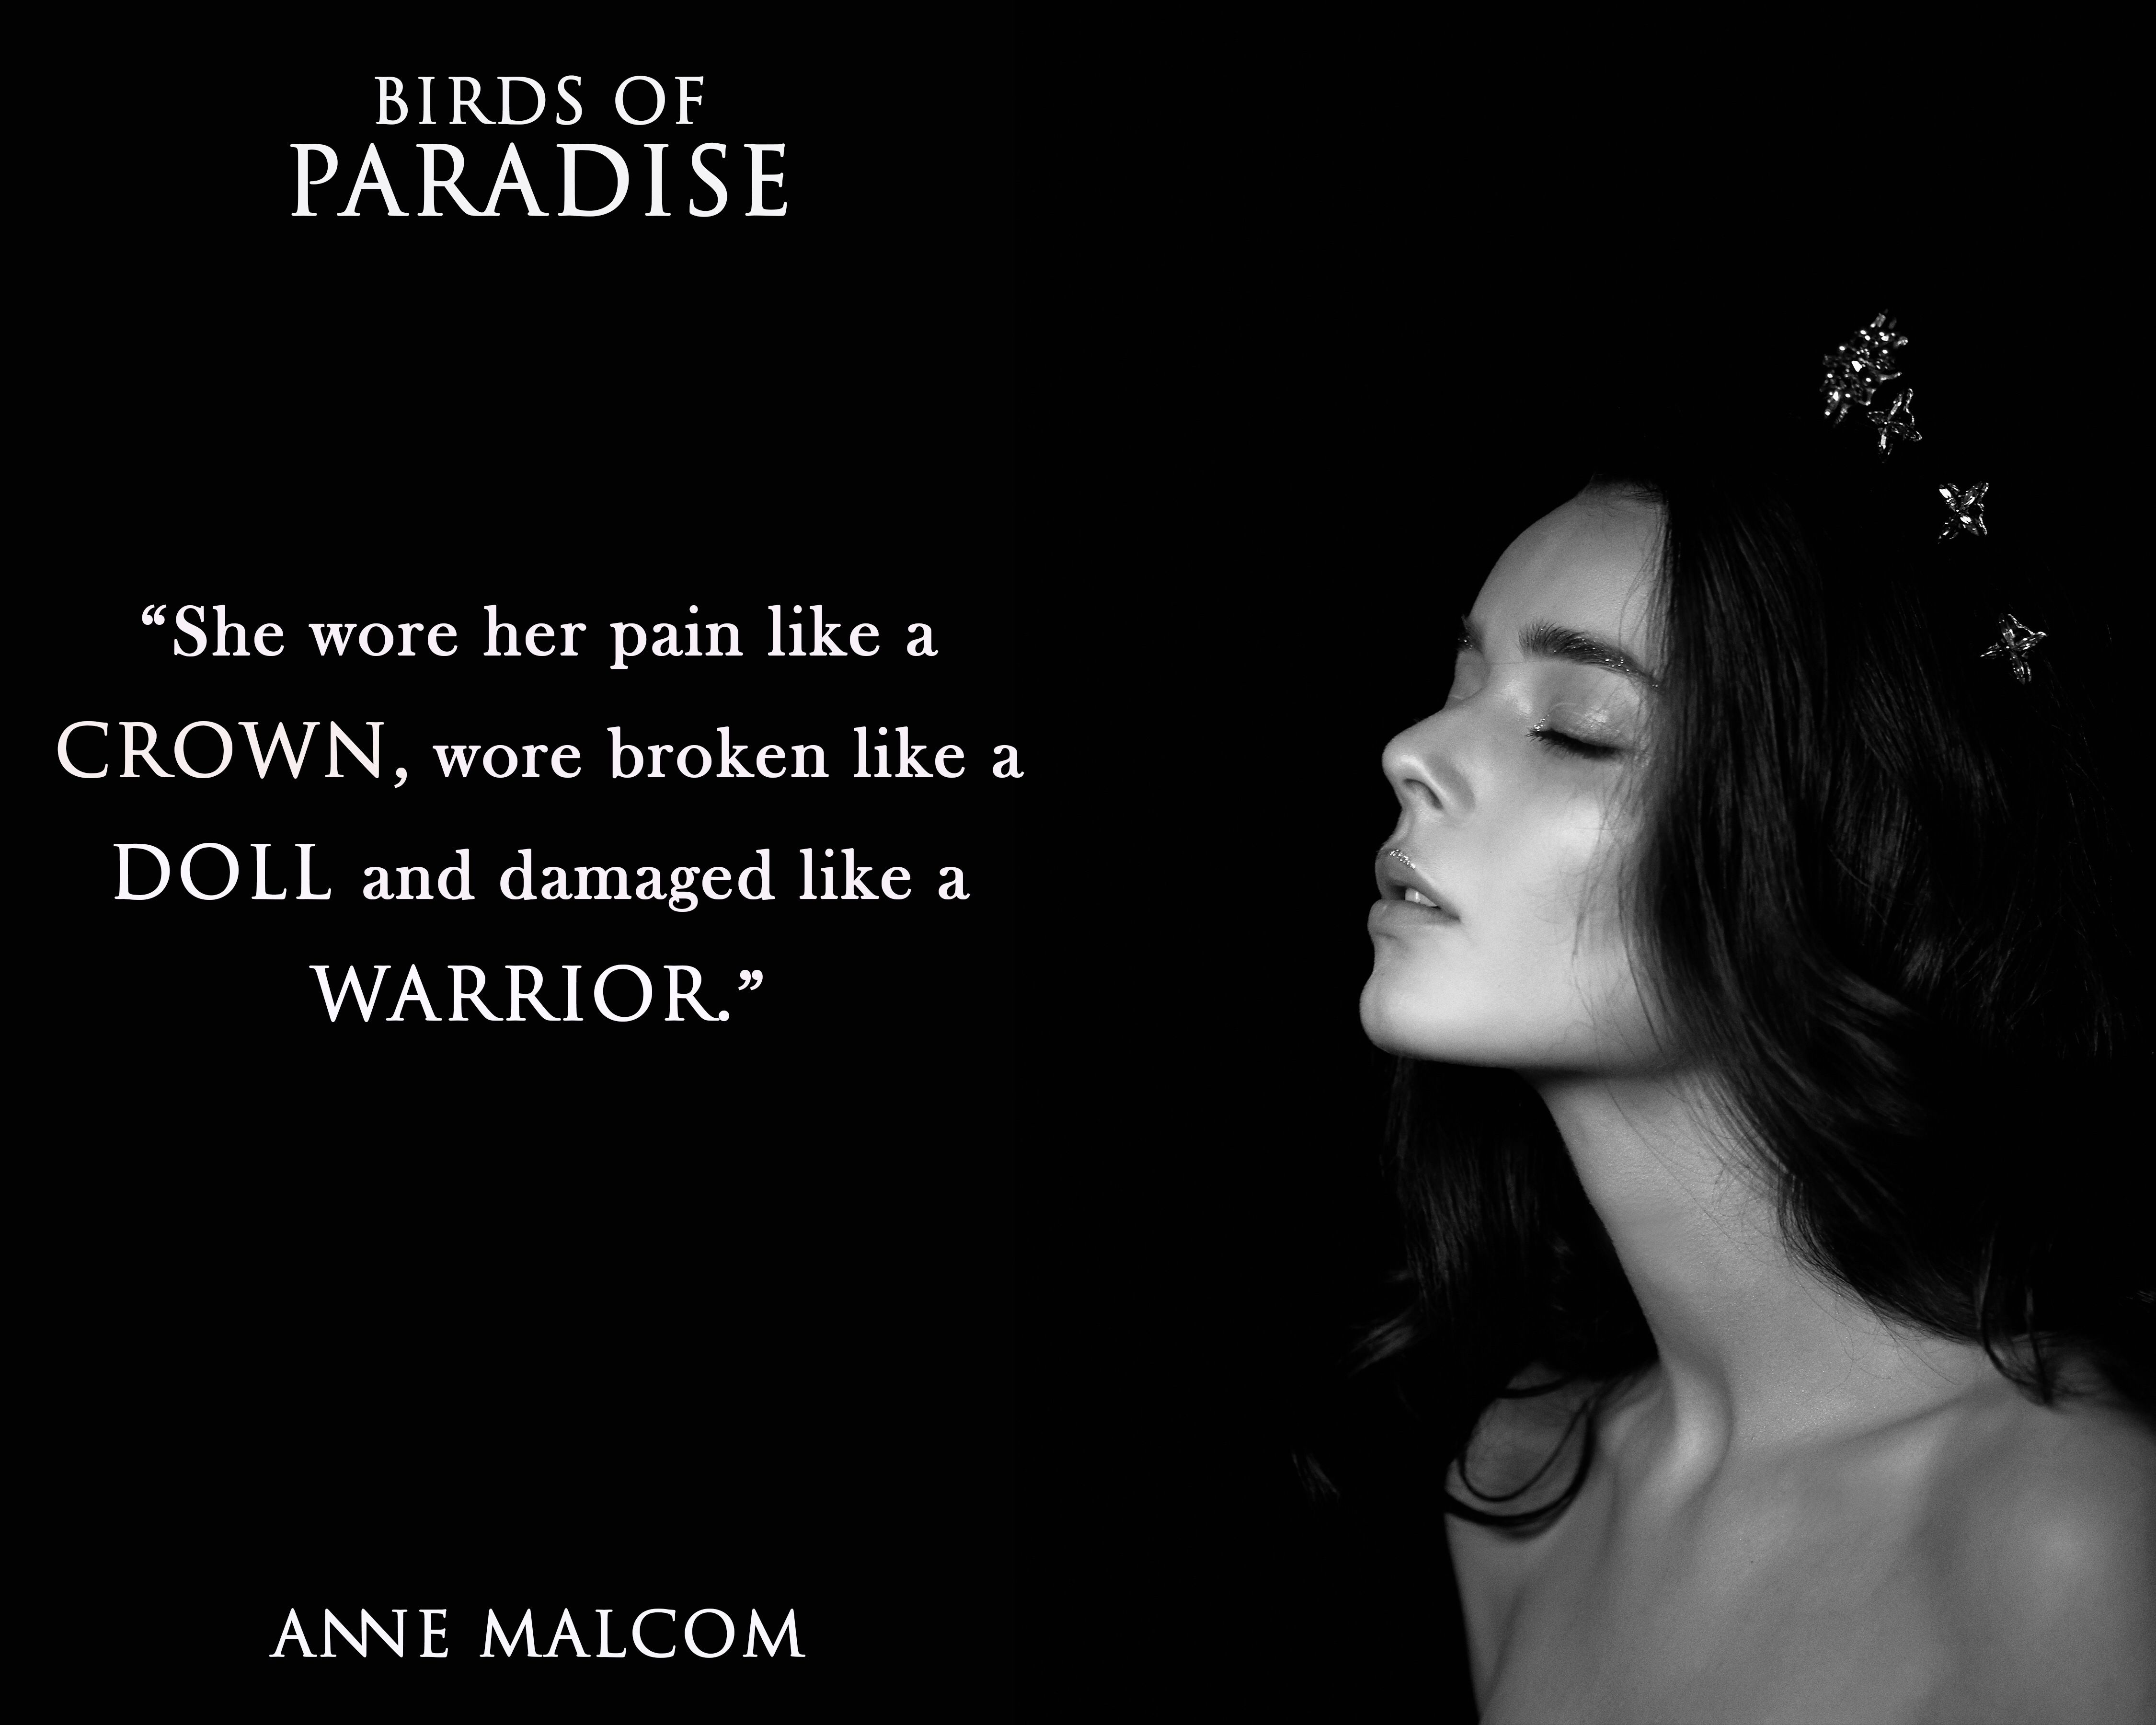 BIRDS OF PARADISE by Anne Malcom